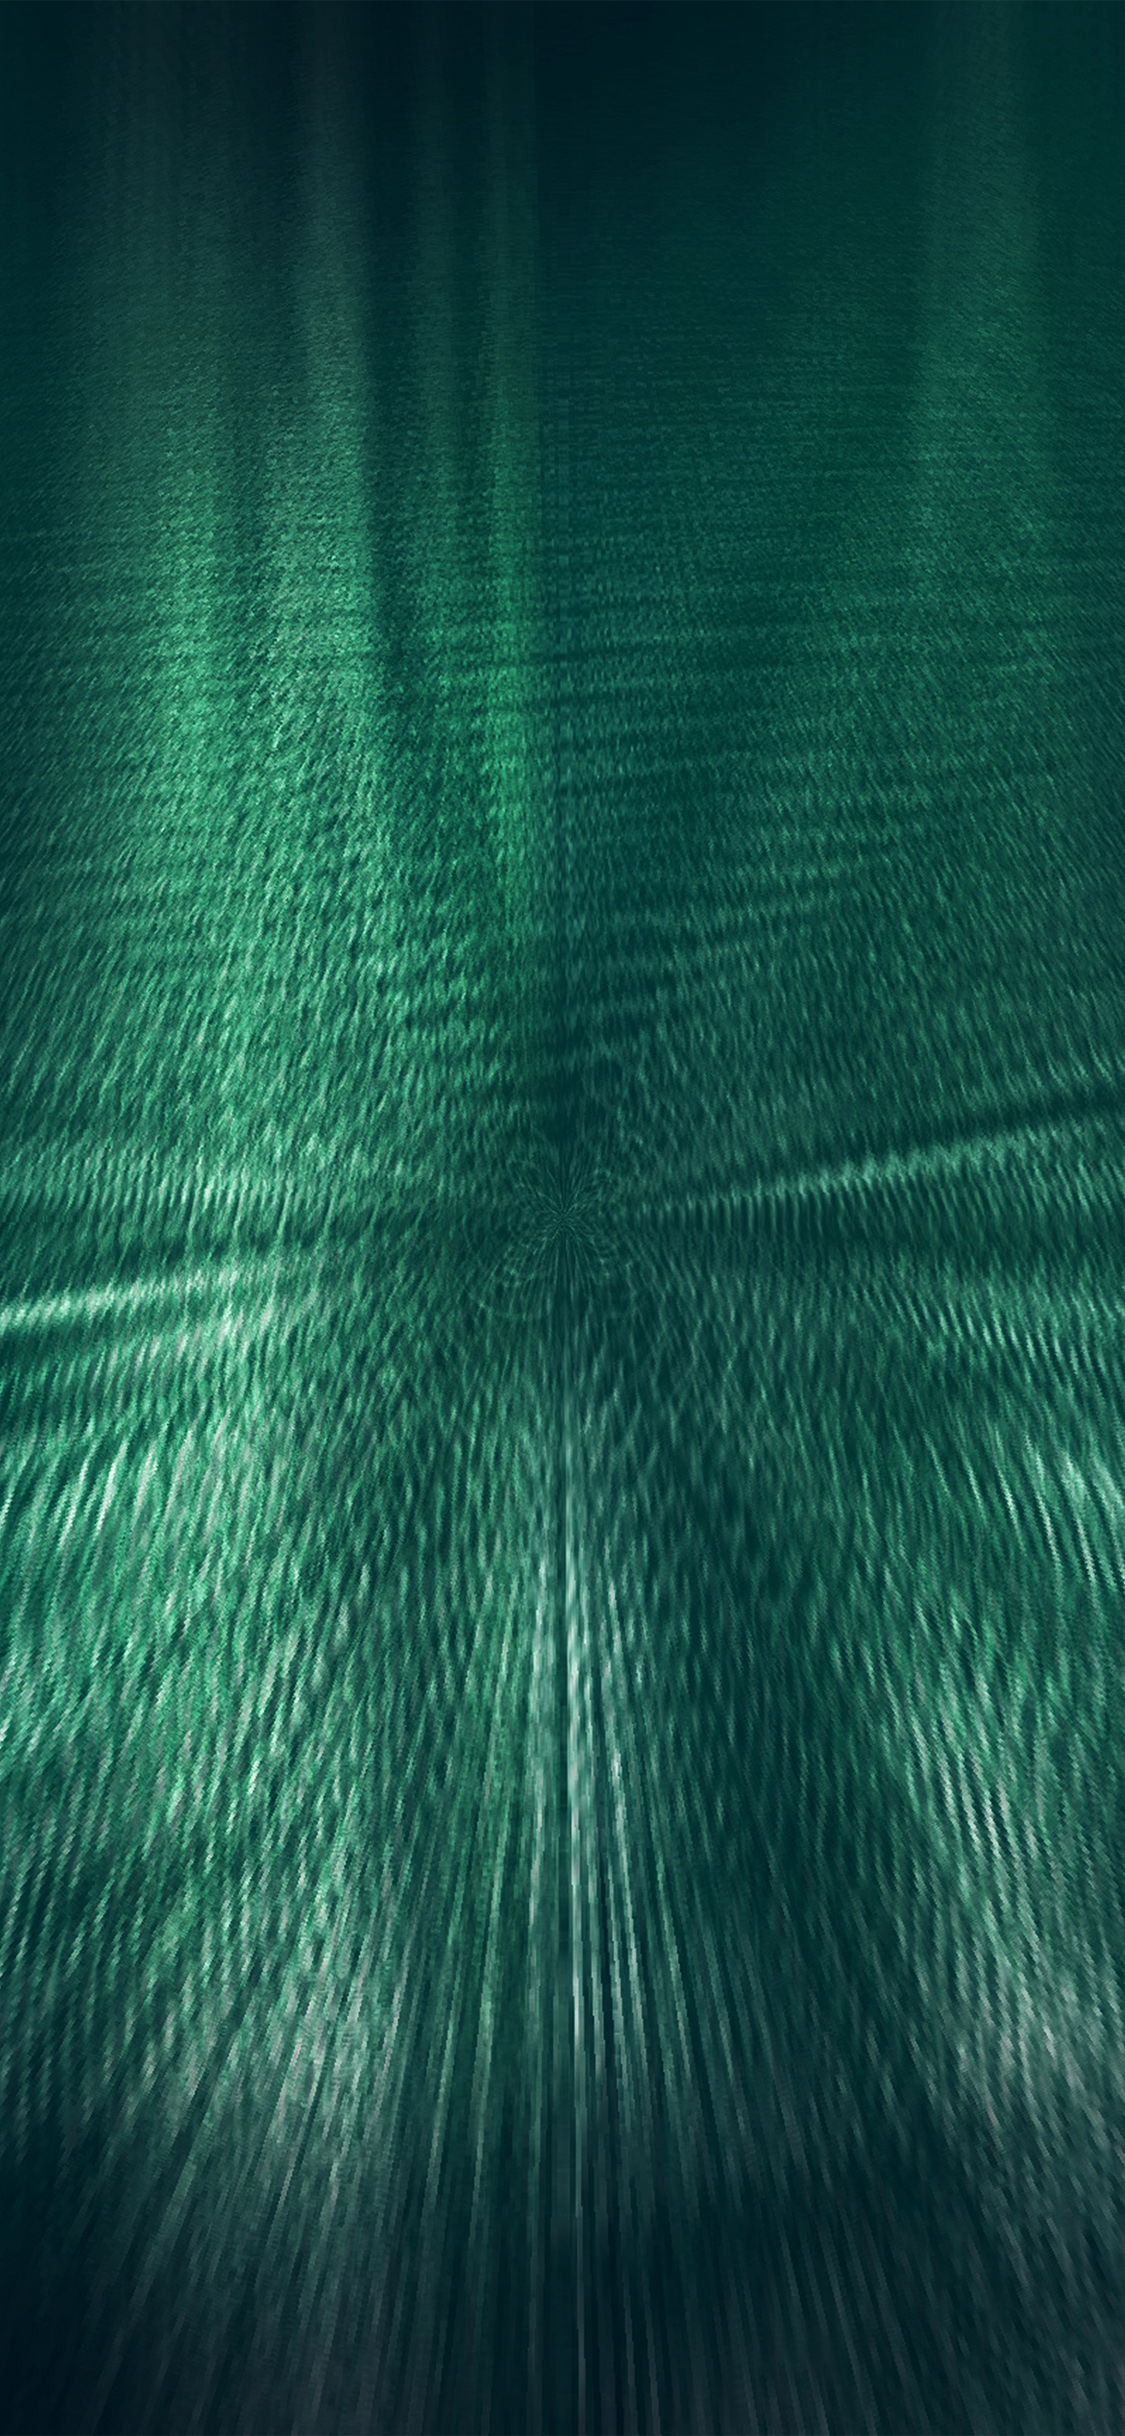 iPhoneXpapers.com-Apple-iPhone-wallpaper-vp28-cool-green-wave-pattern